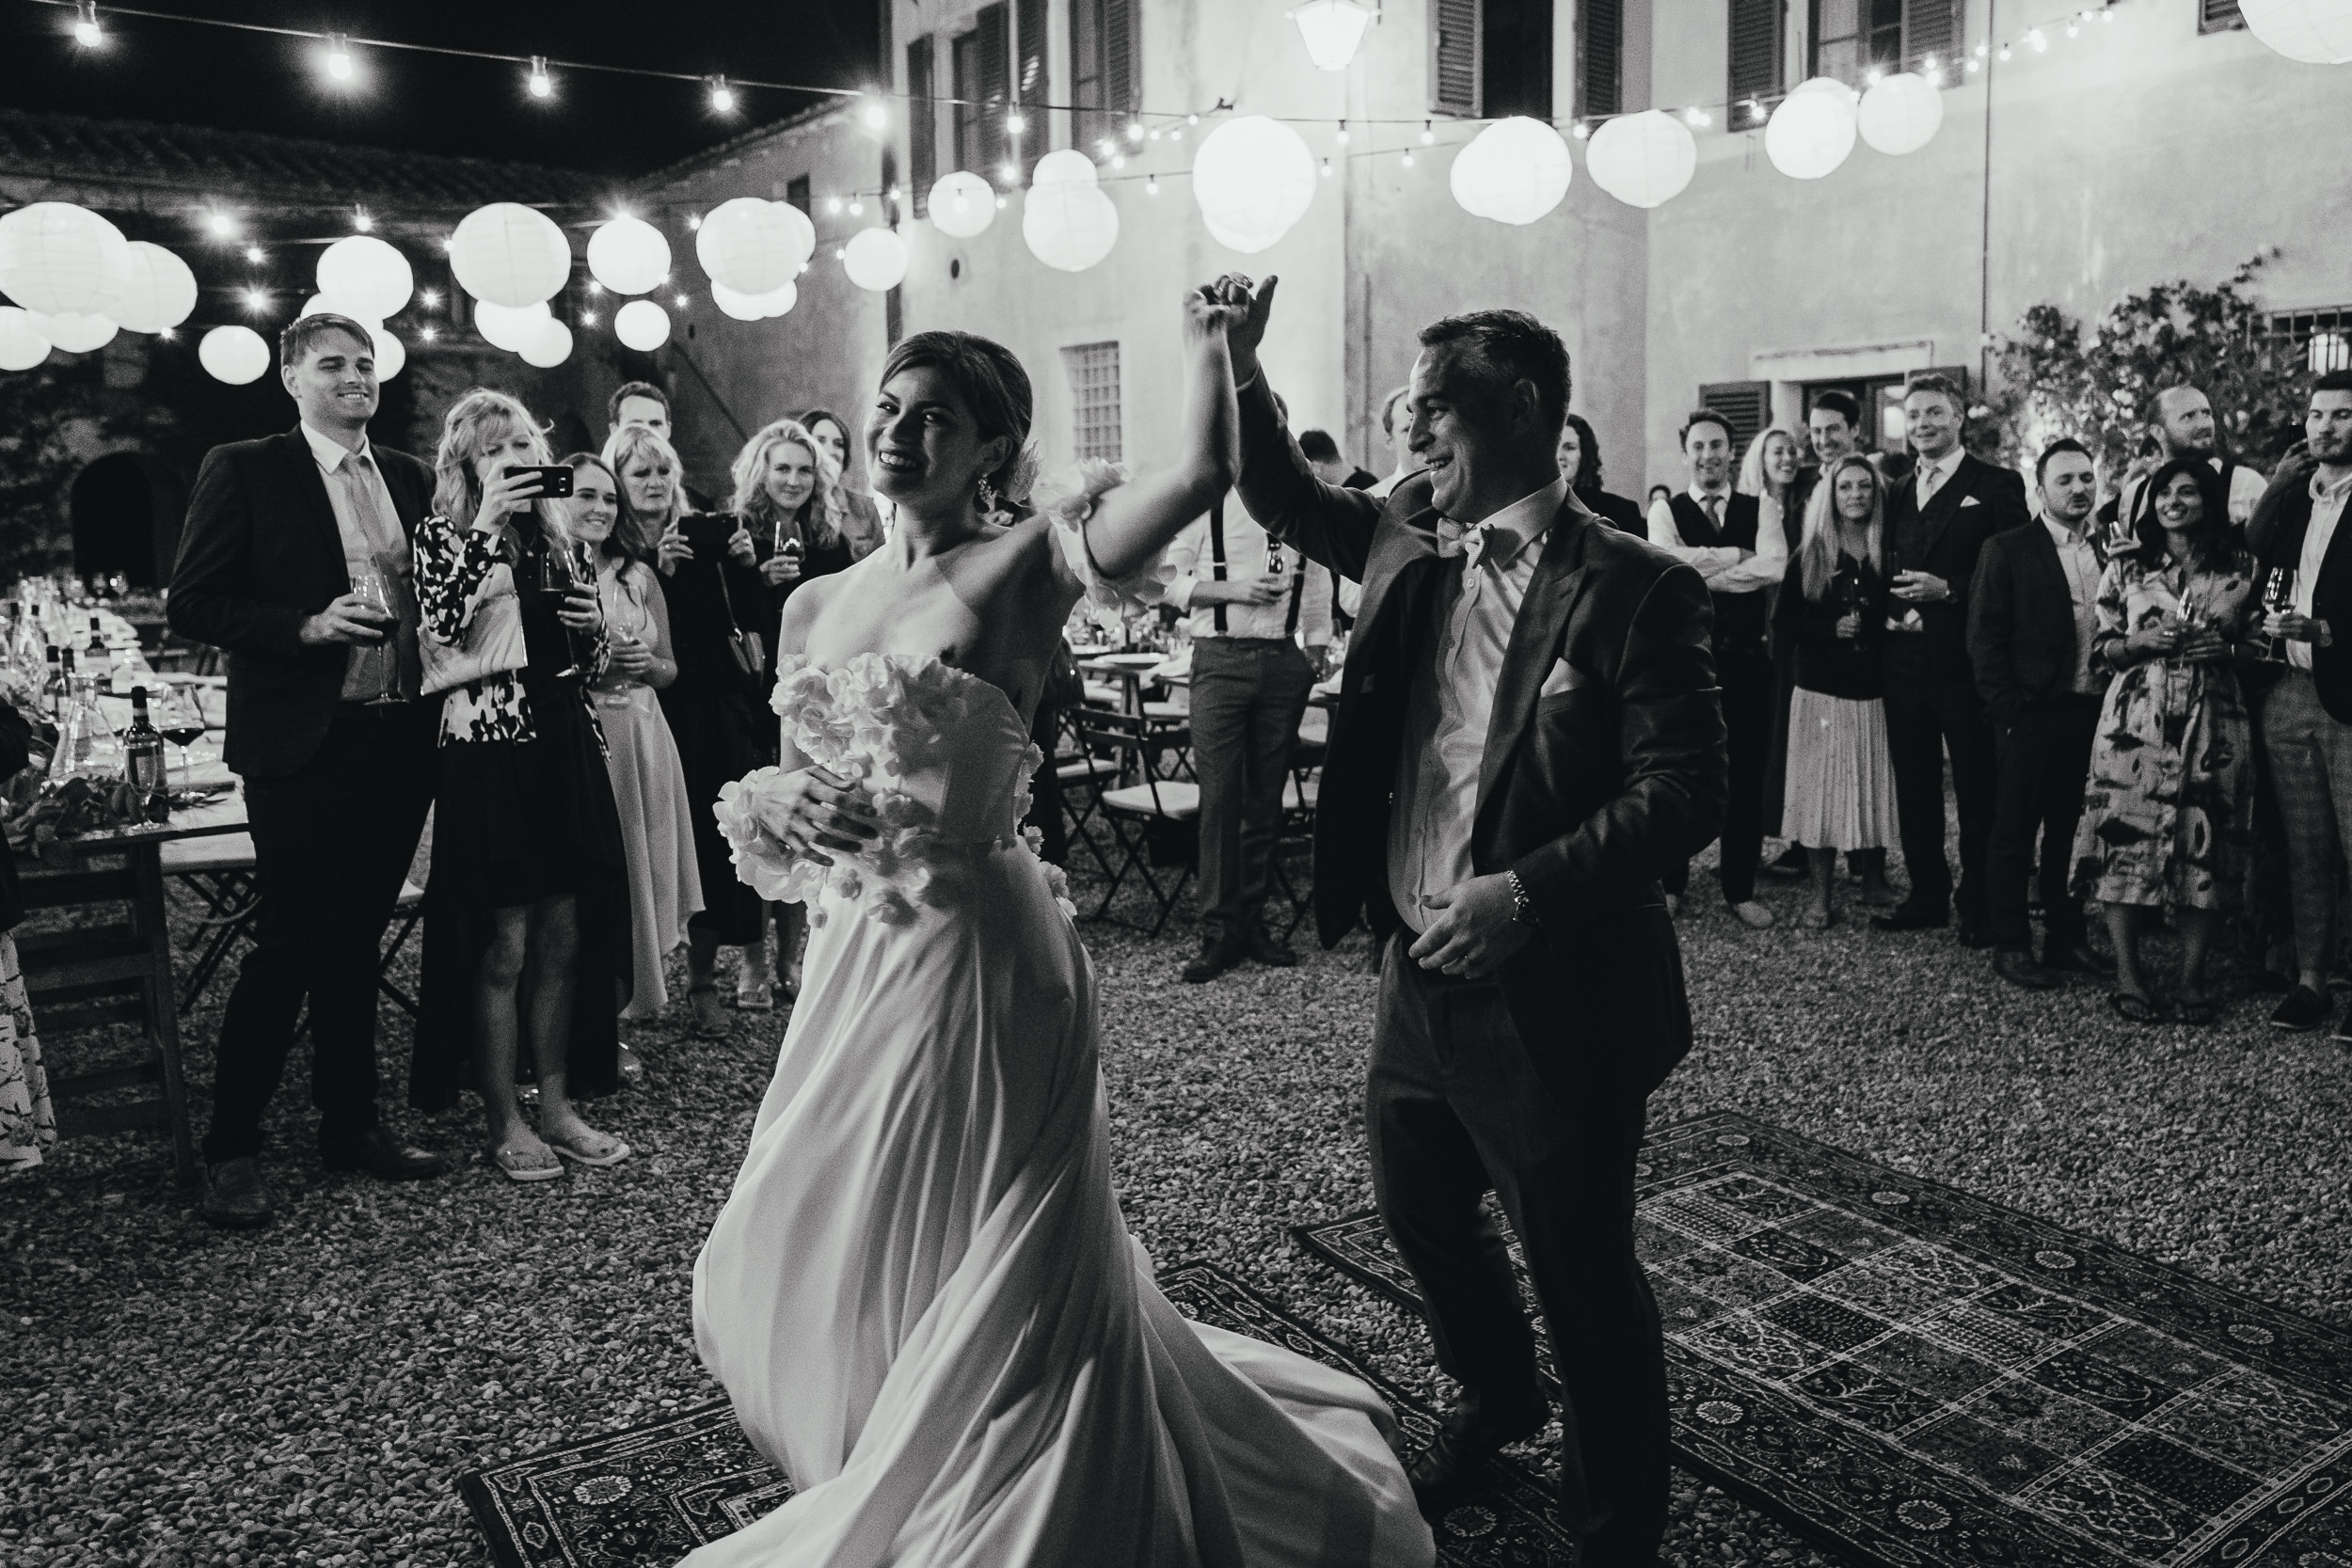 Tuscan Villa Wedding - The Bride and Groom share their first dance